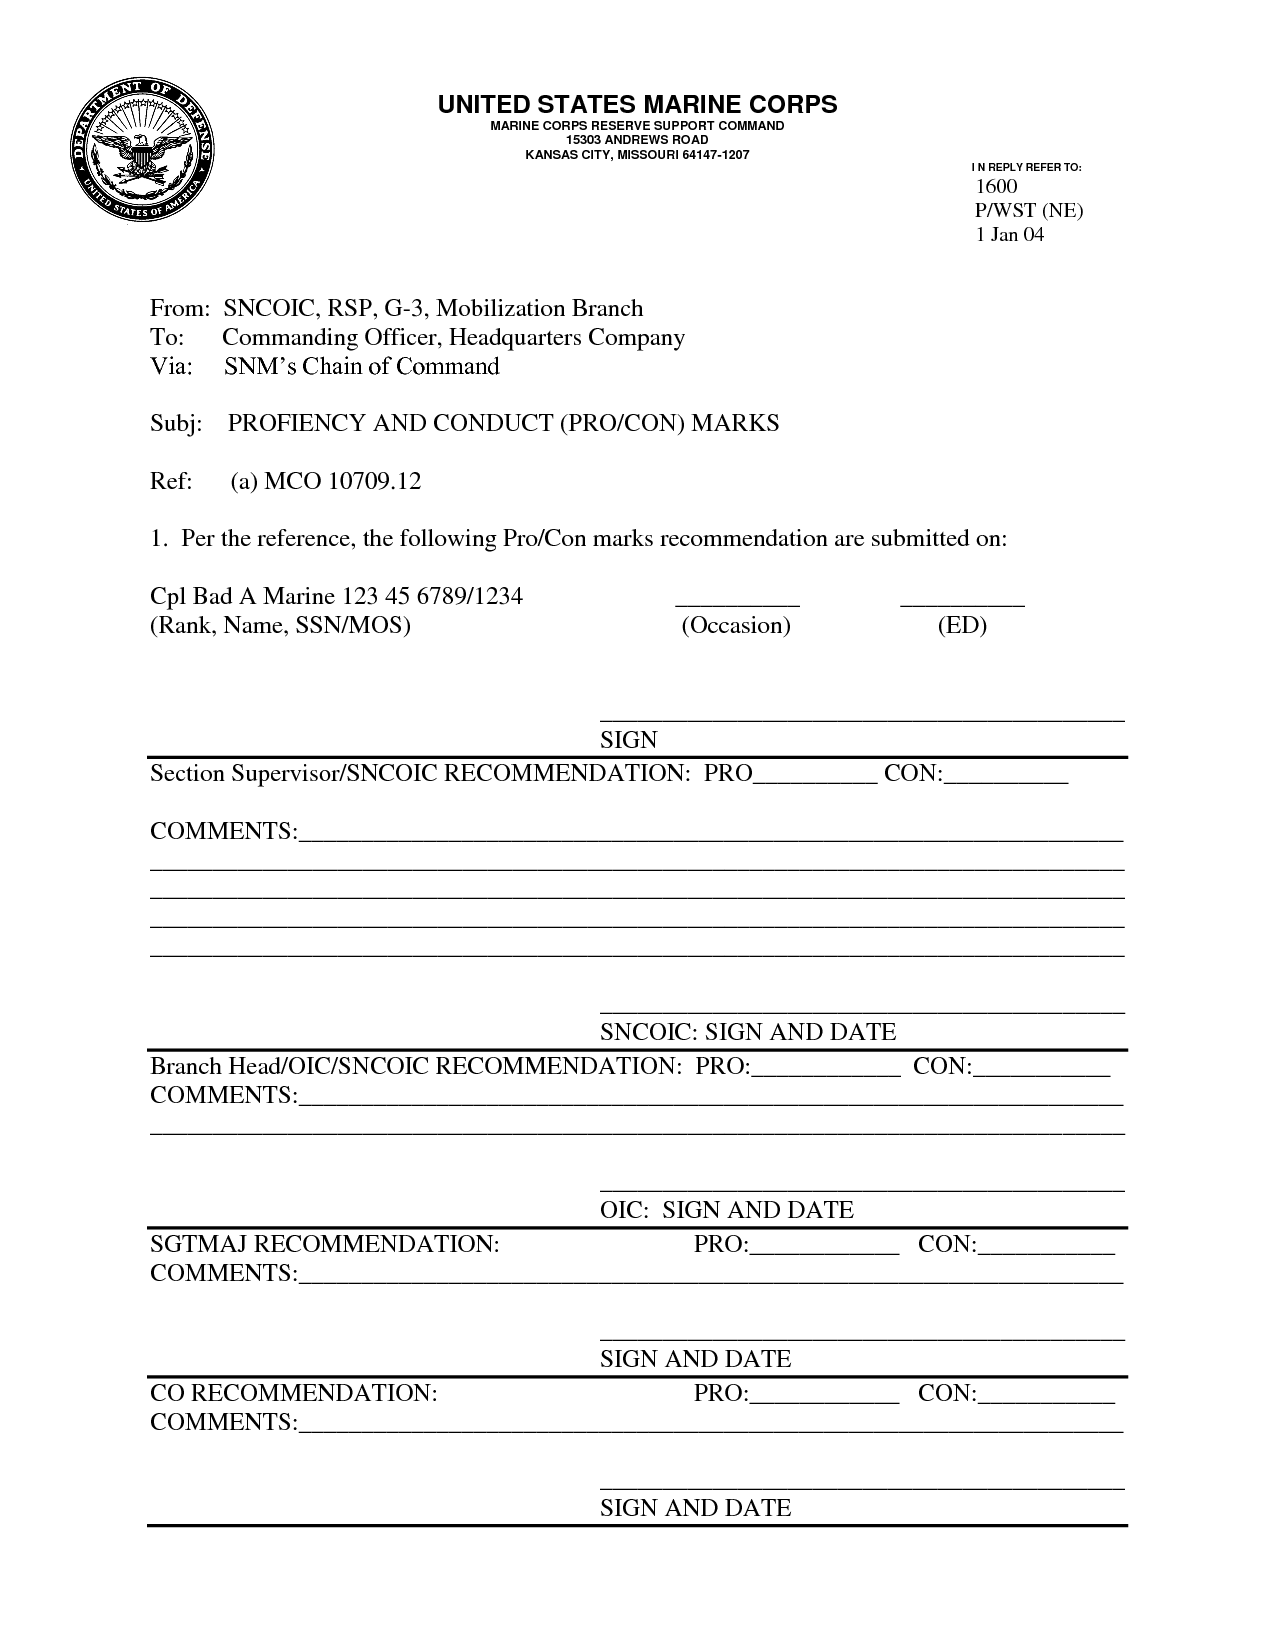 Marine Corps Pros And Cons Worksheet